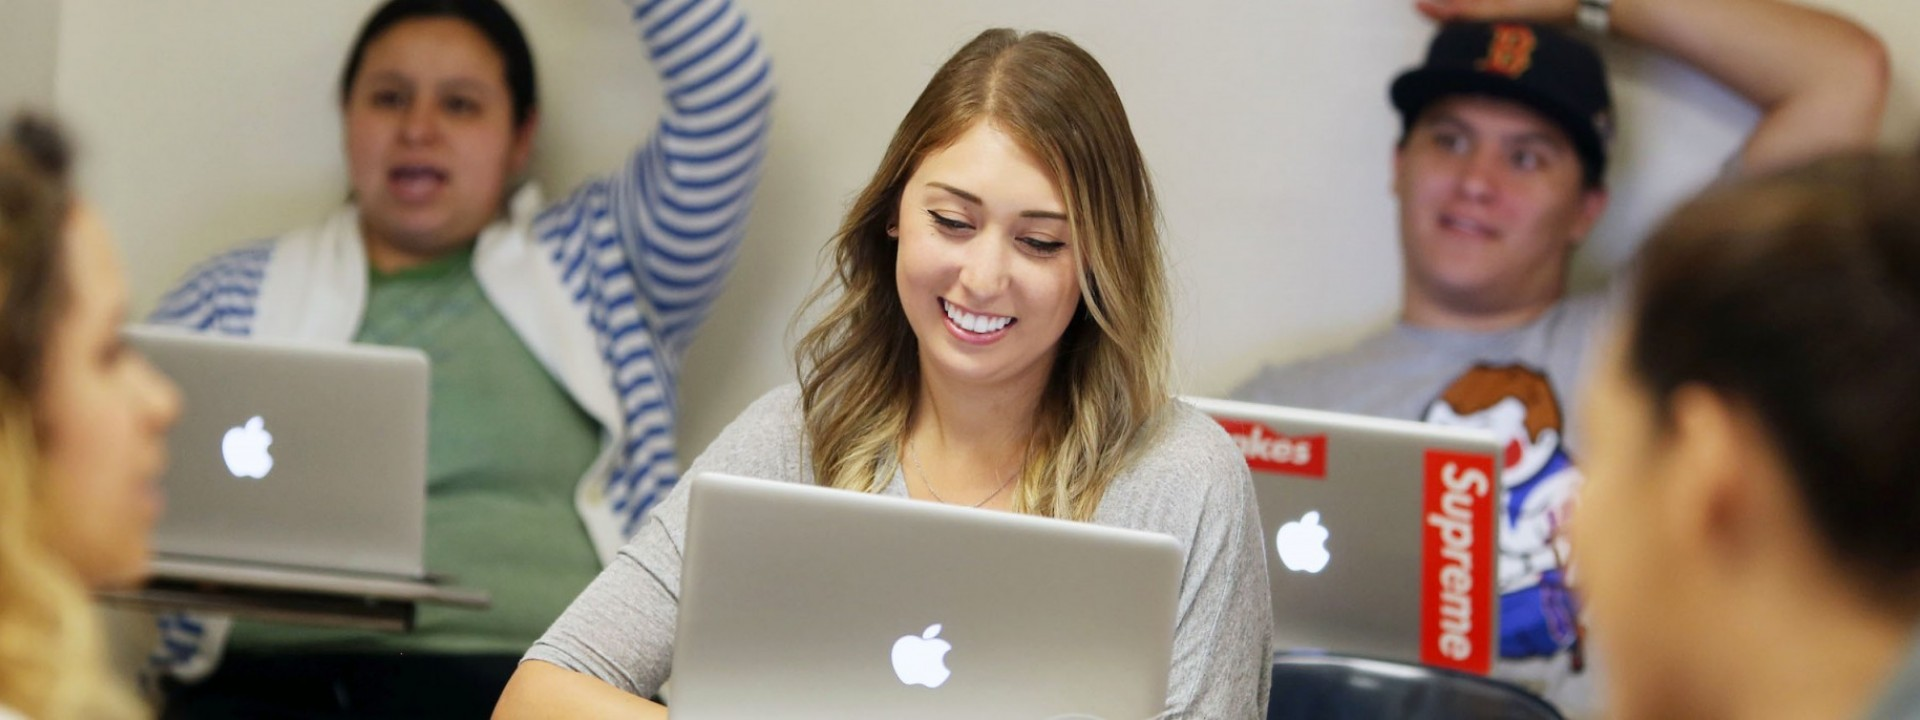 Image of a Caucasian female student smiling in a classroom setting in front of an open laptop.